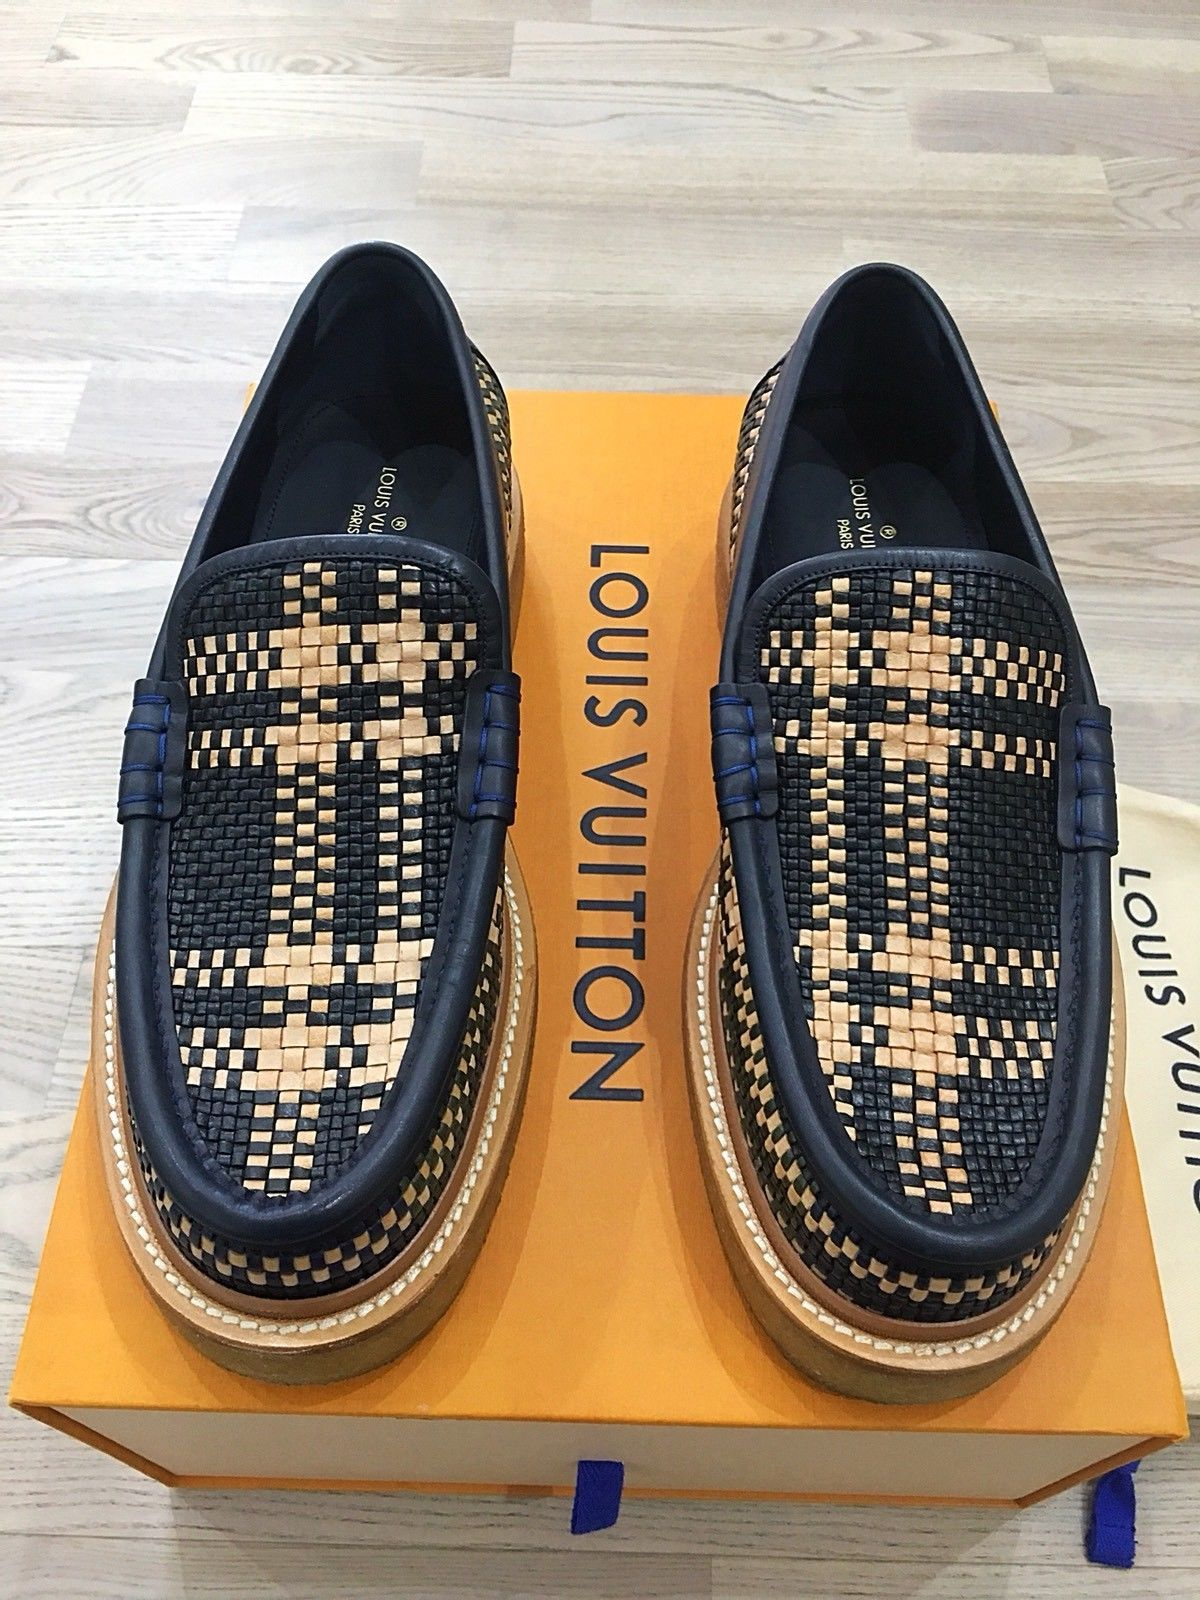 bfbb212d505 Genuine Rare Louis Vuitton Woven Men Loafer Moccasin UK9 EU43 US10 ...